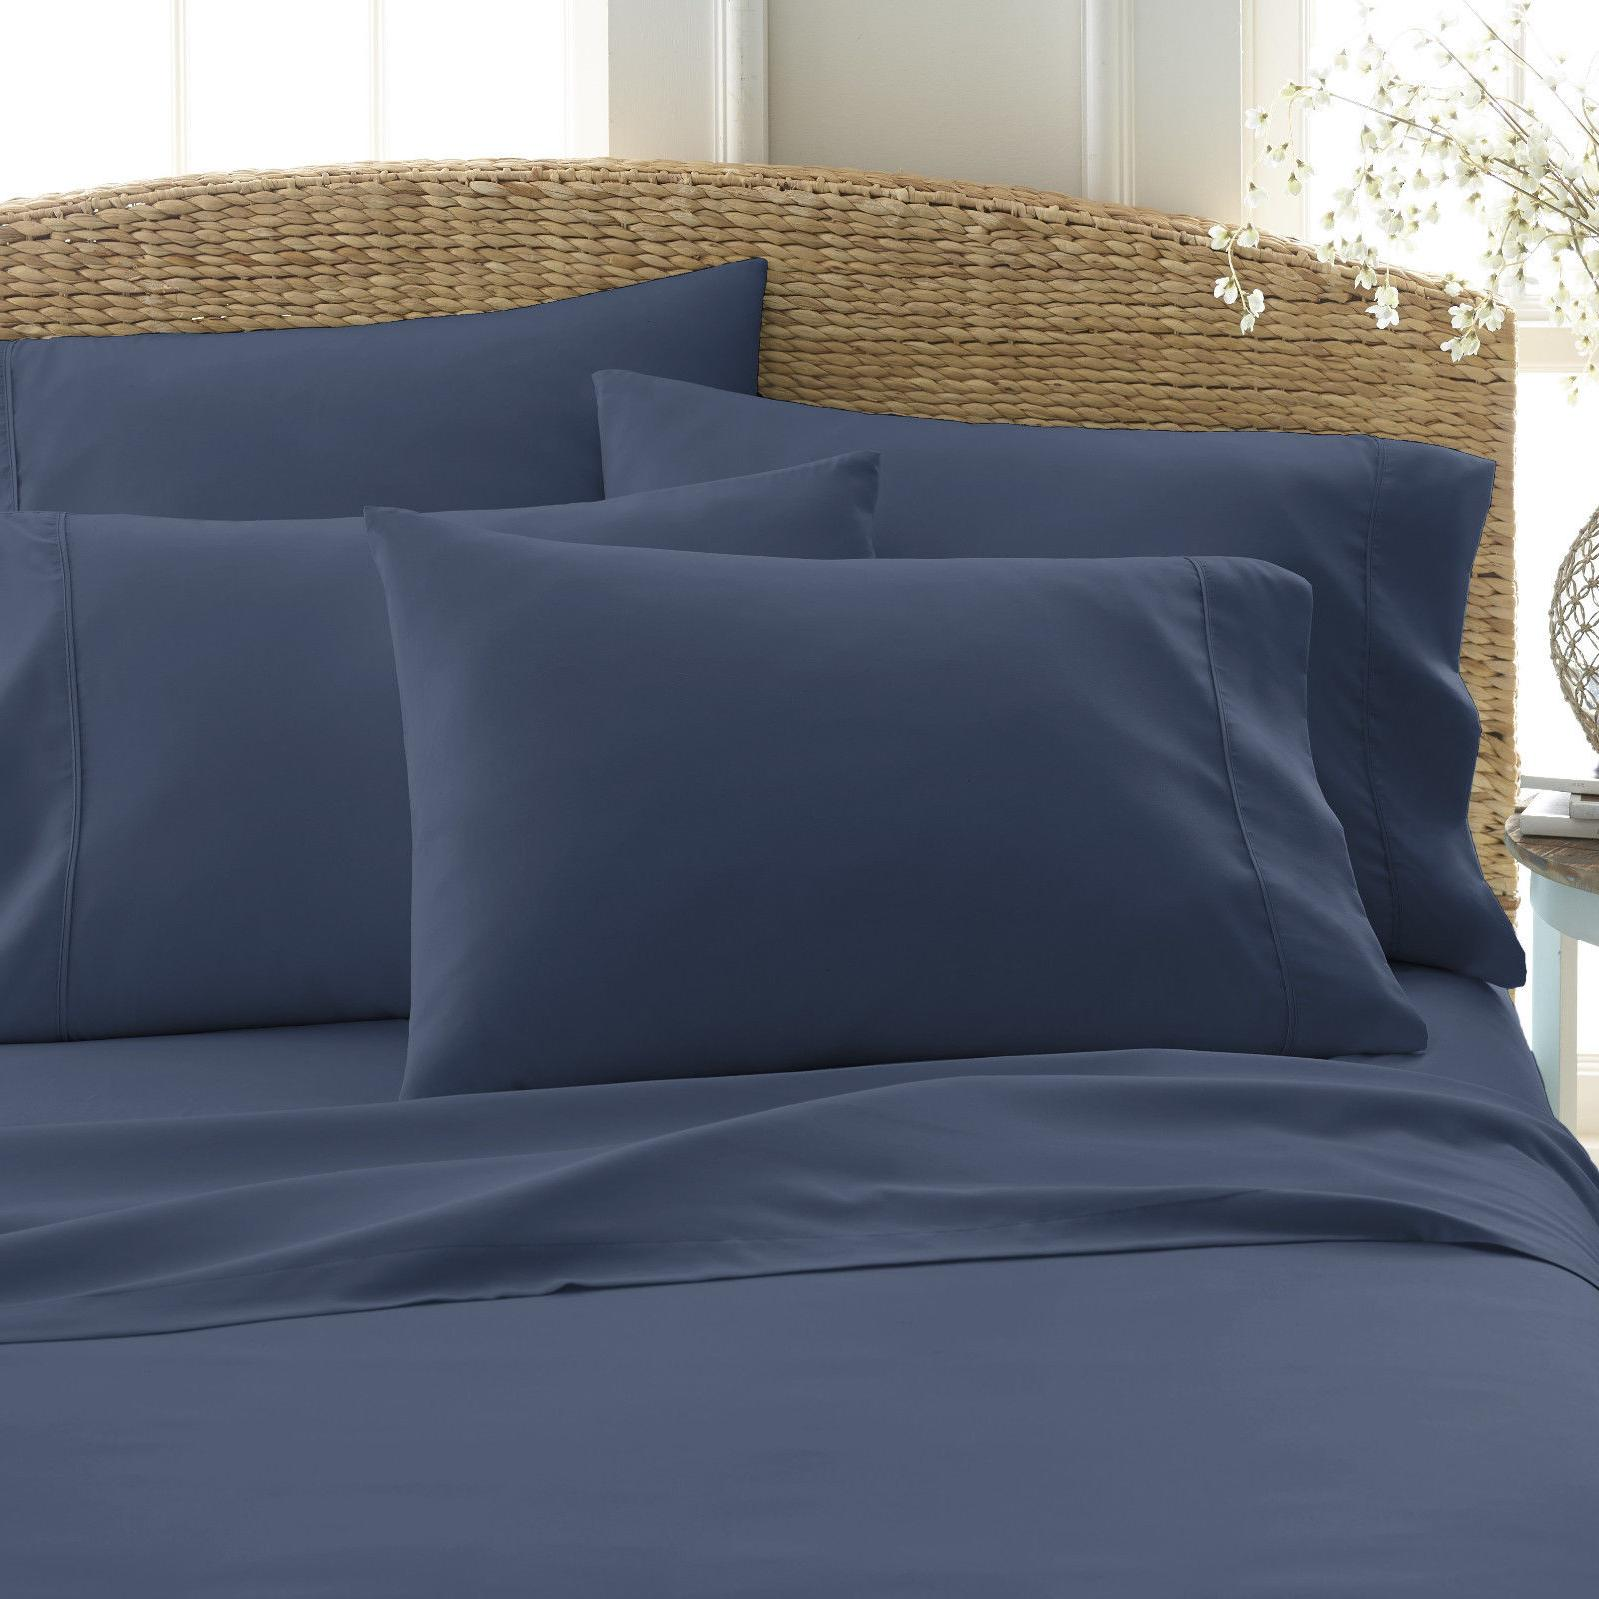 6 PIECE 2100 COUNT SERIES BED SHEET SET